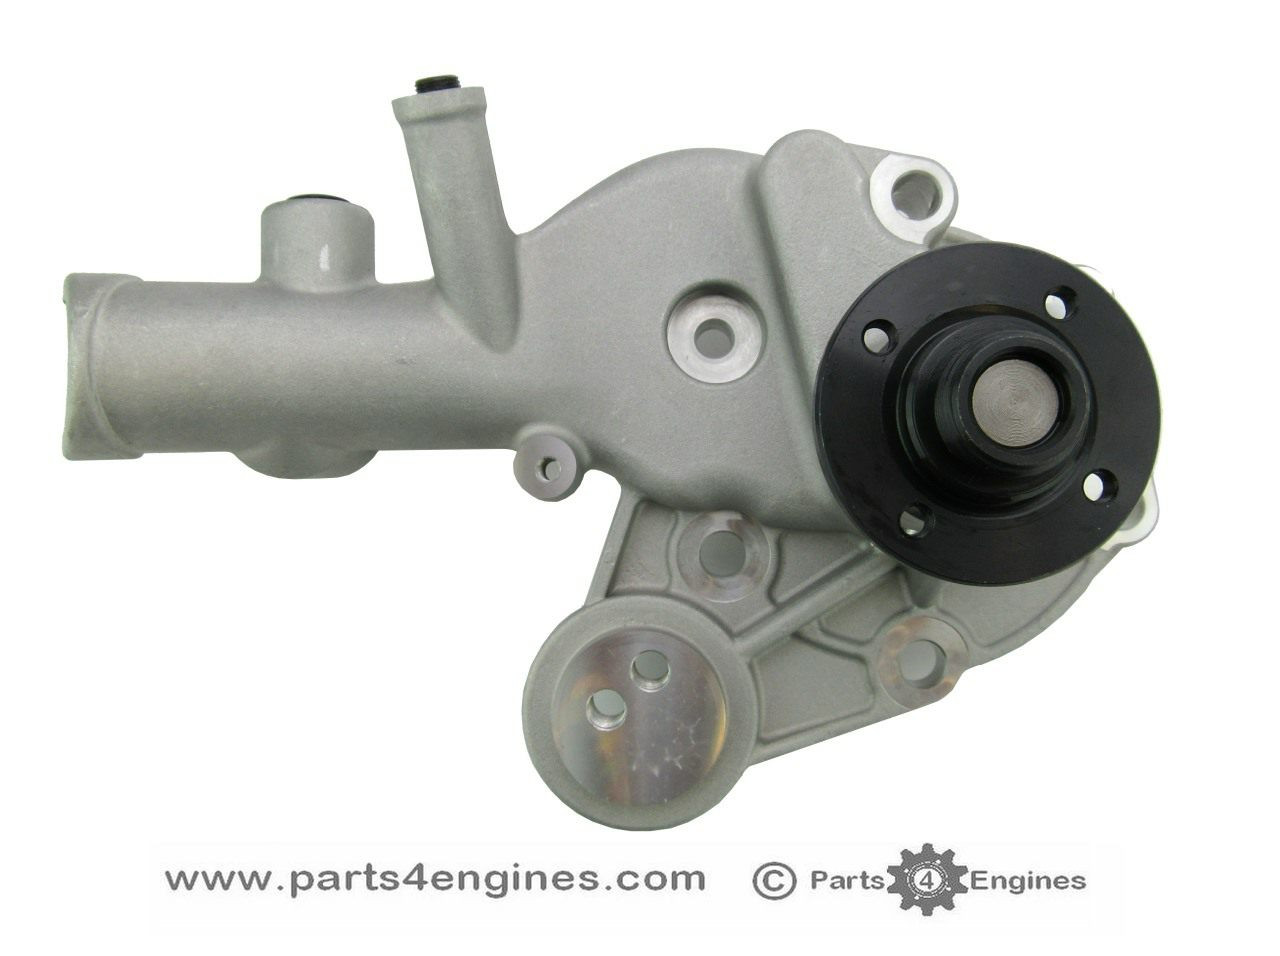 Volvo Penta TAMD22 Water Pump, from parts4engines.com